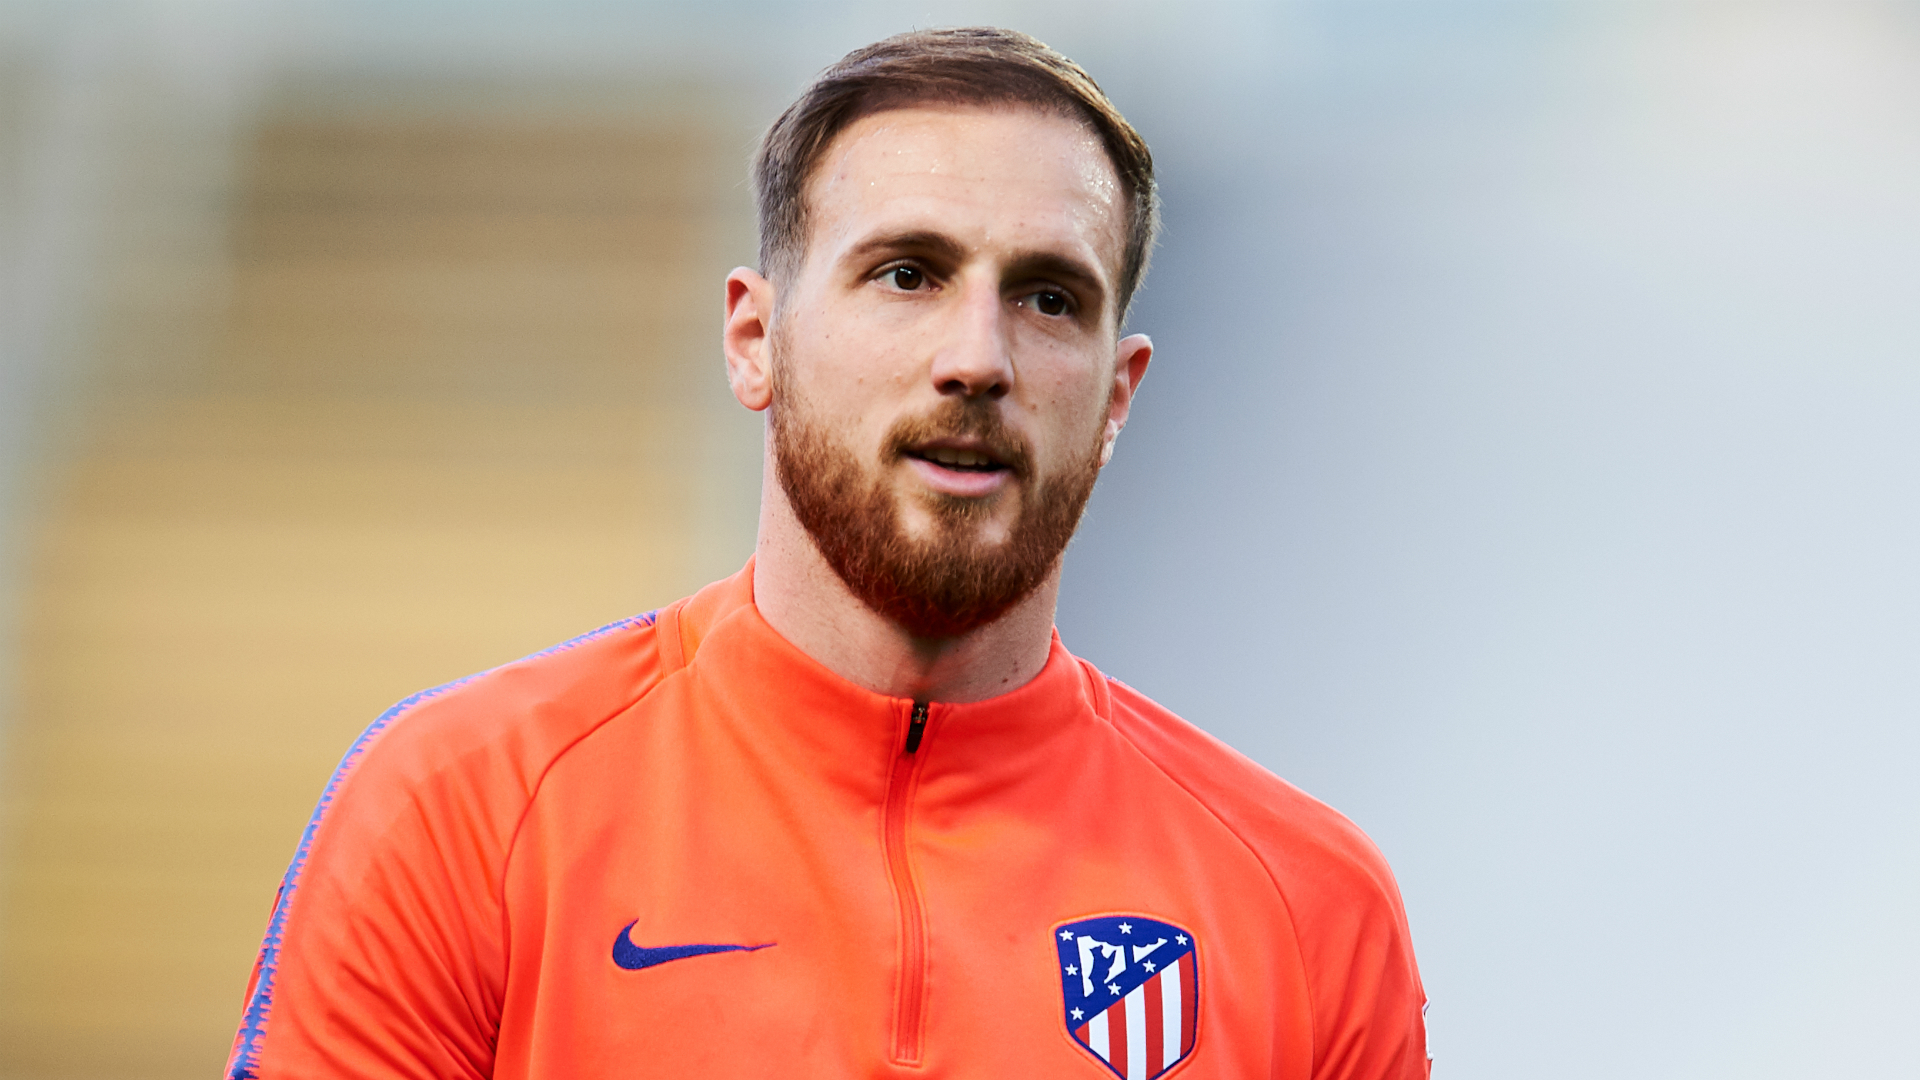 Atletico goalkeeper Oblak ruled out with thigh injury